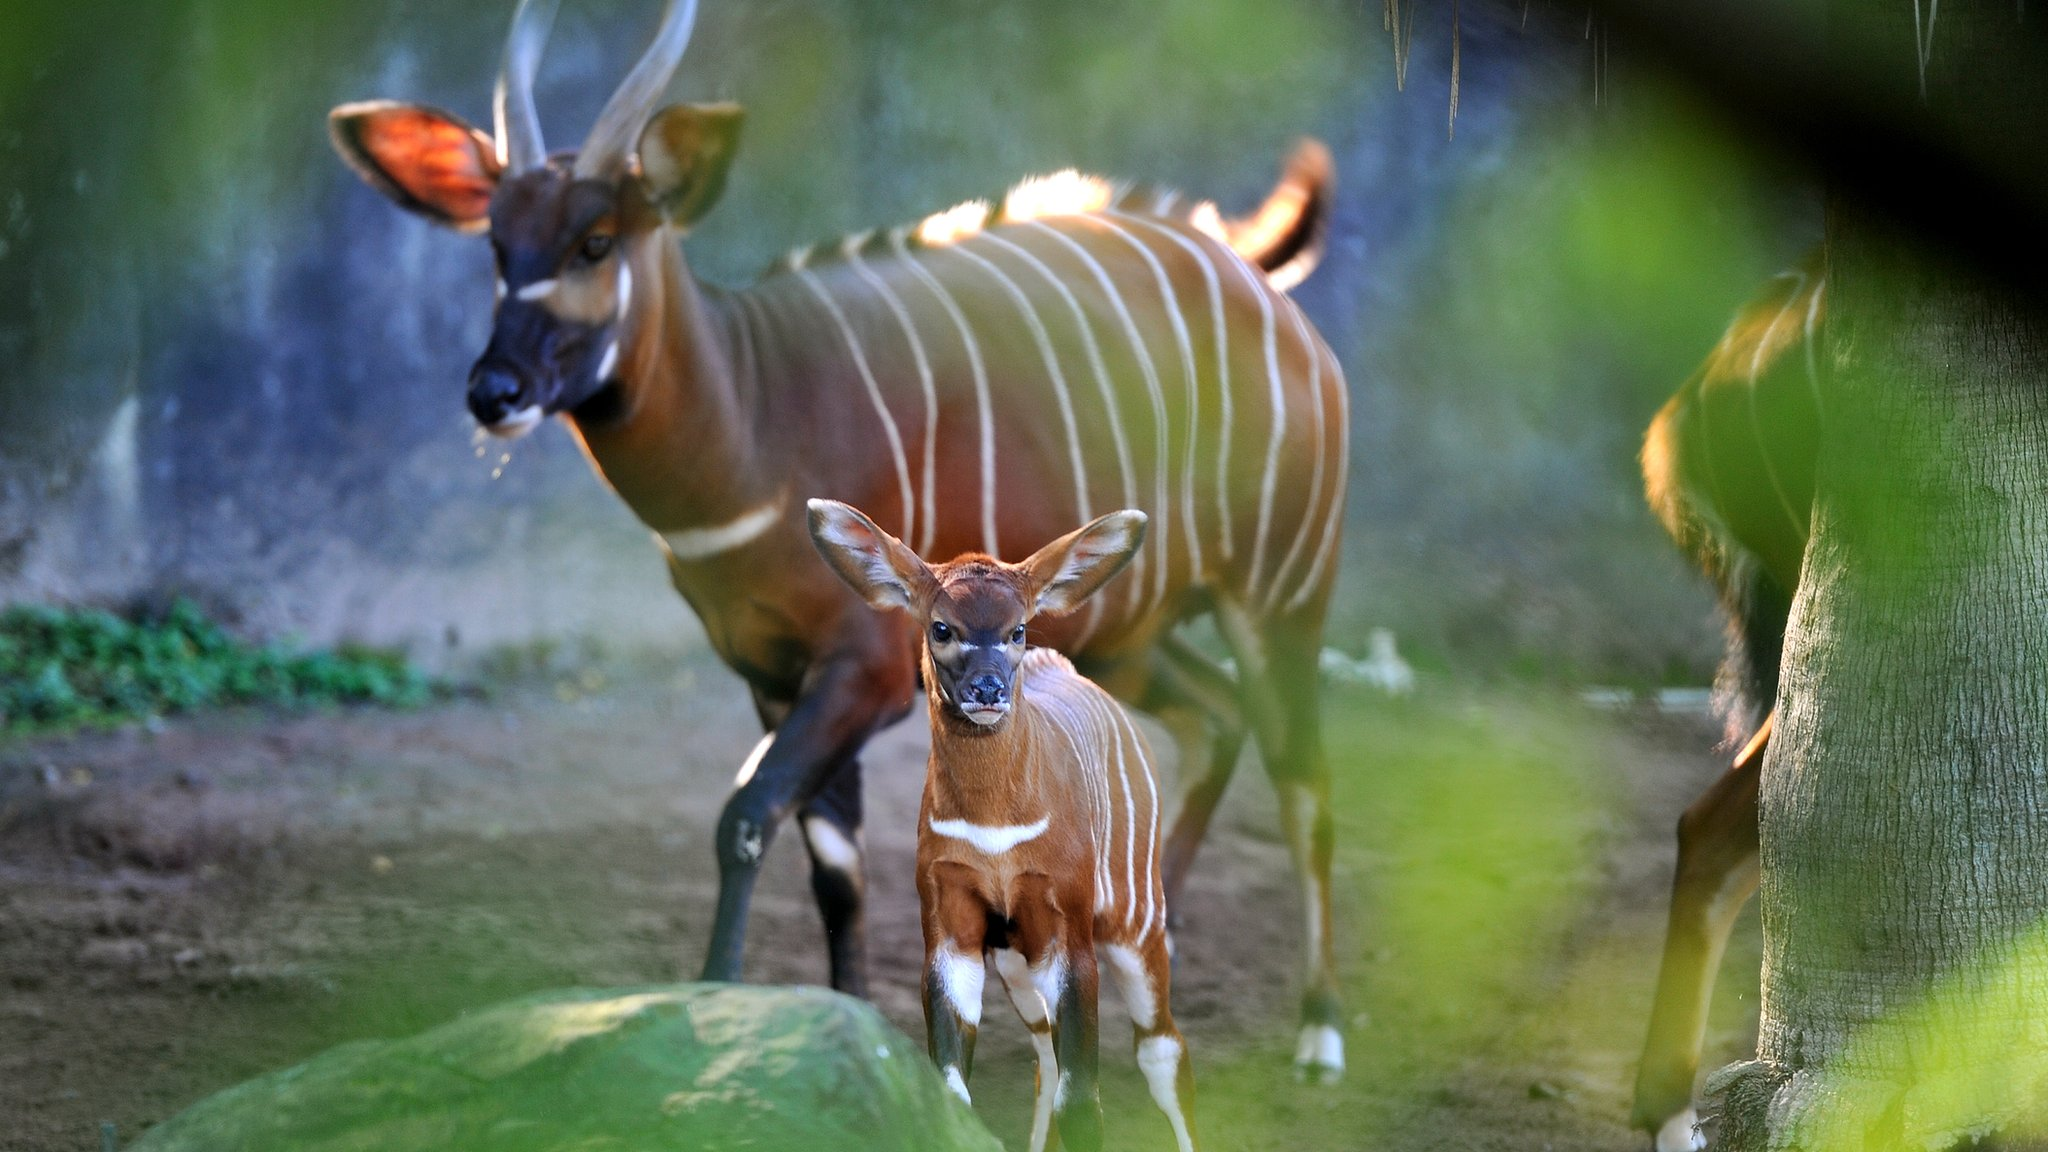 Antelope named Taylor Swift in zoo escape